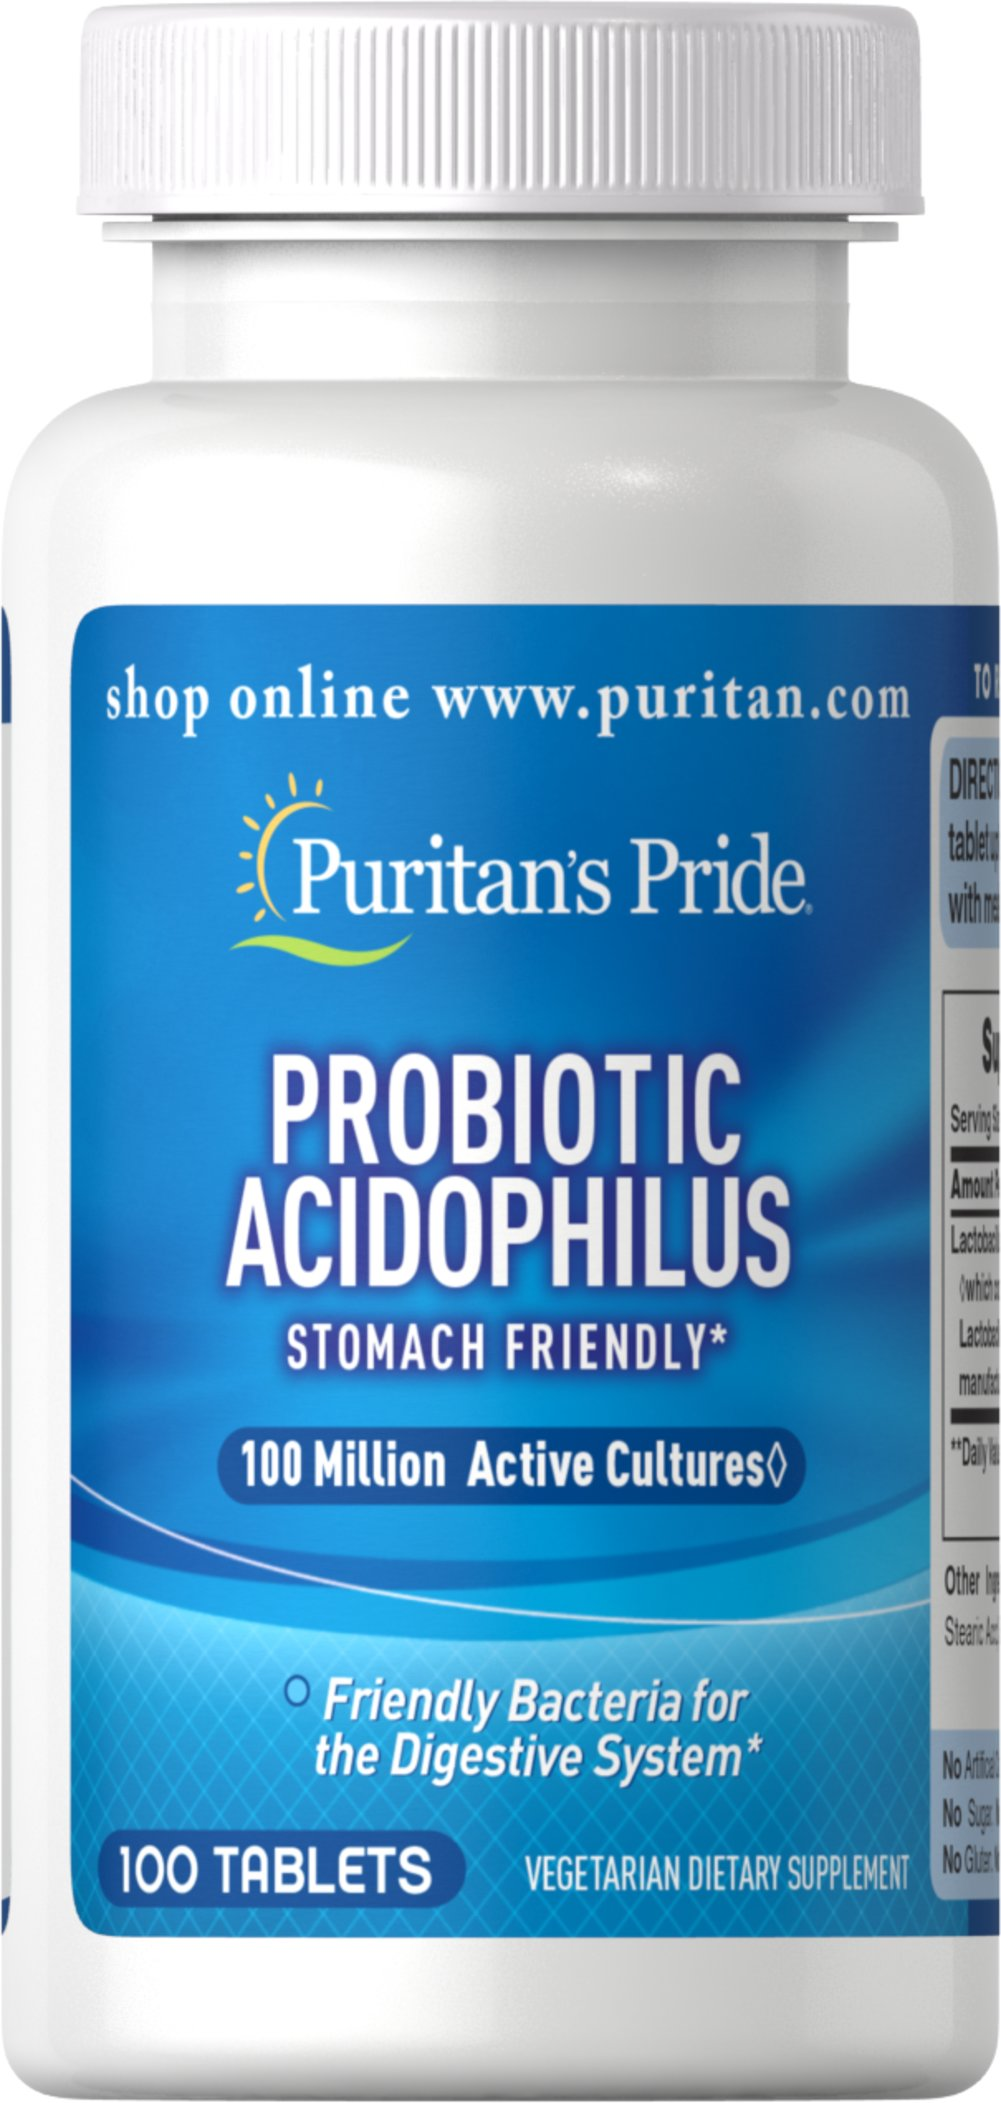 Probiotic Acidophilus <p>New small tablet</p><p>Stomach Friendly</p><p>Friendly bacteria for the Digestive System</p> 100 Tablets  $7.29